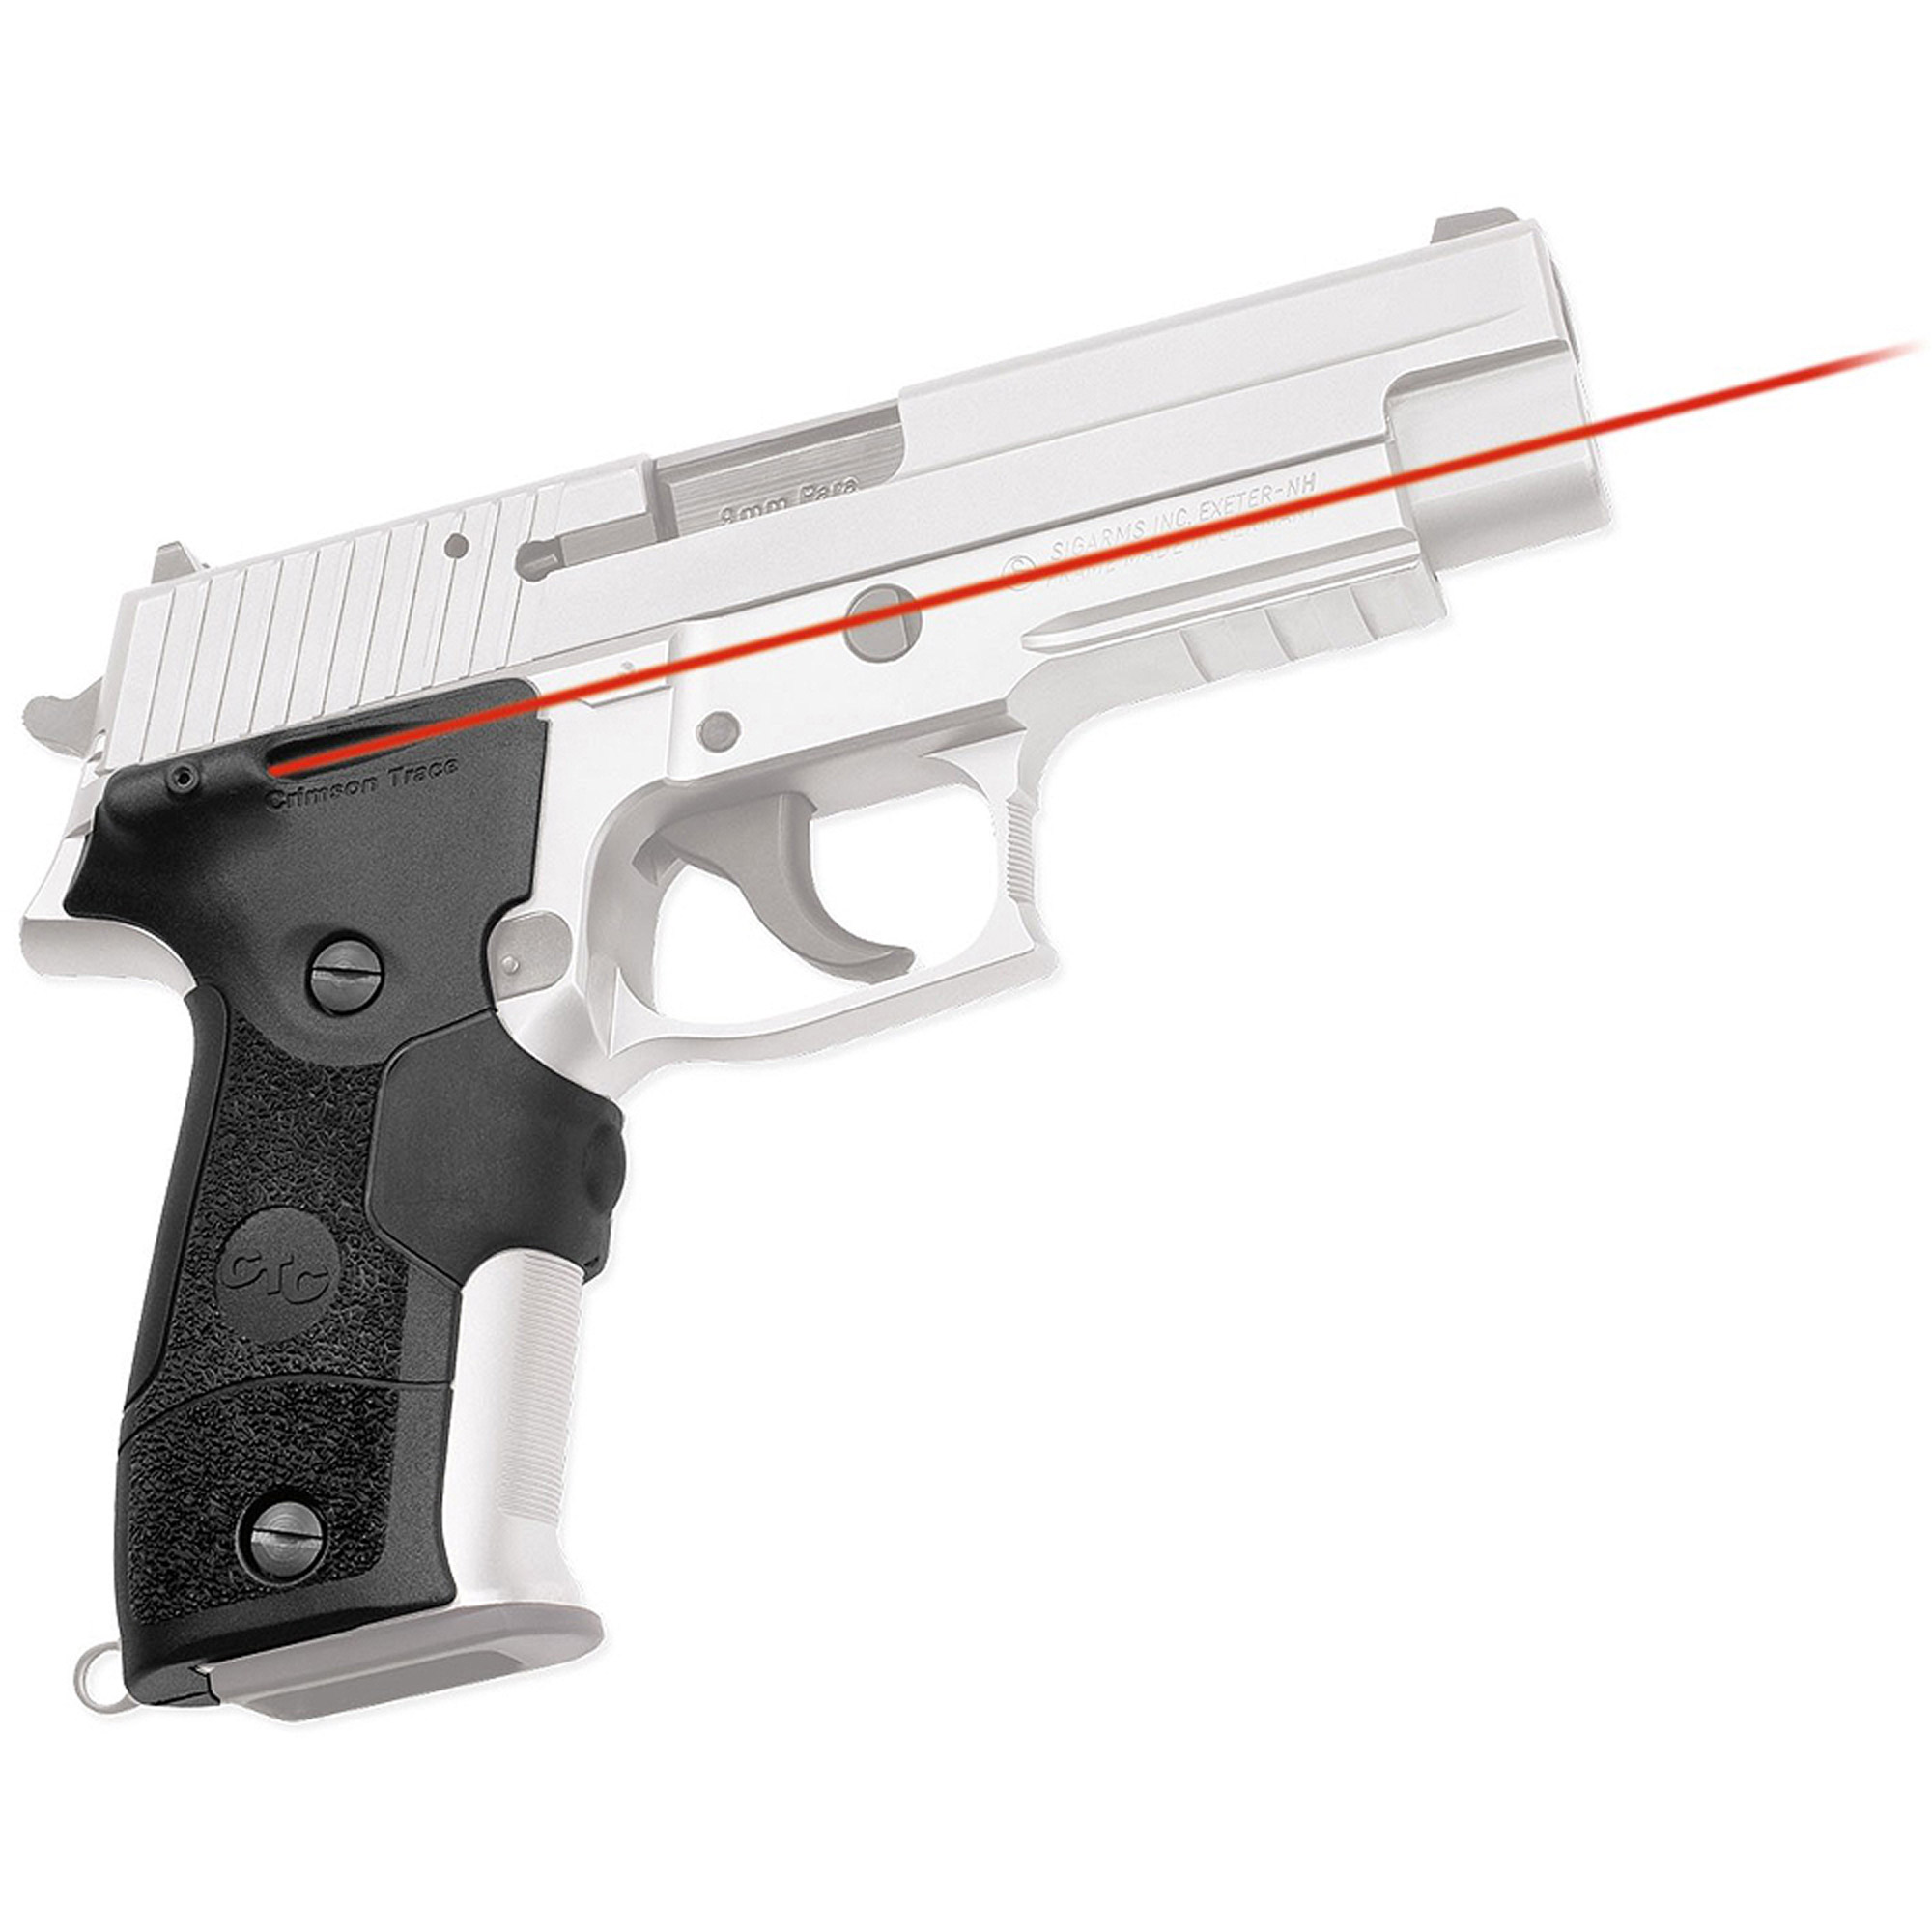 Crimson Trace Corporation Mil-Spec Laser Grip, Fits Sig P226, Black, Rubber Overmold